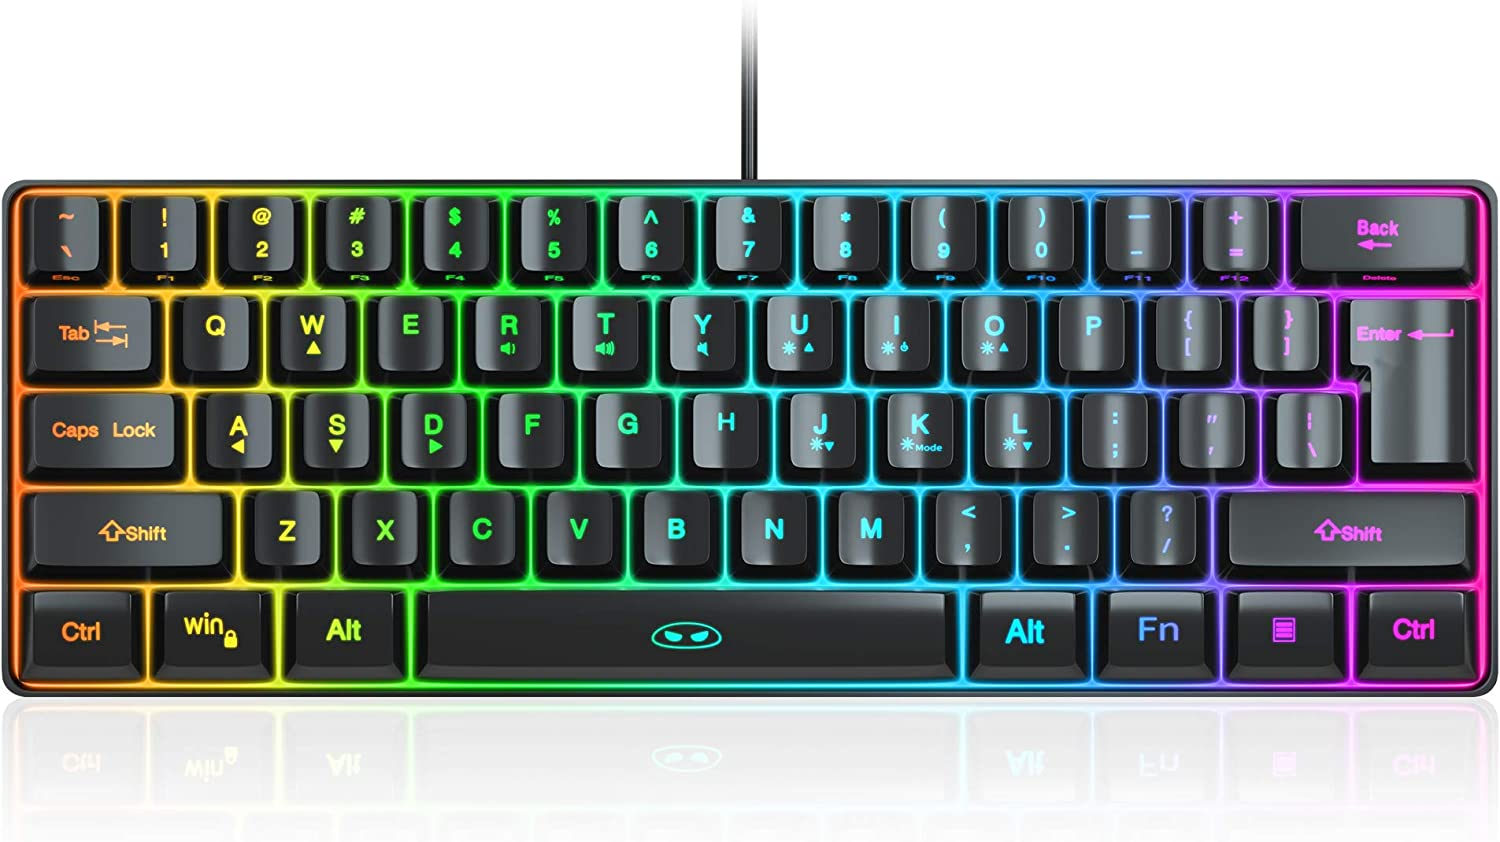 MageGee TS91 Mini 60% Gaming/Office Keyboard,Waterproof Keycap Type Wired RGB Backlit Compact Computer Keyboard for Windows/Mac/Laptop (Black)